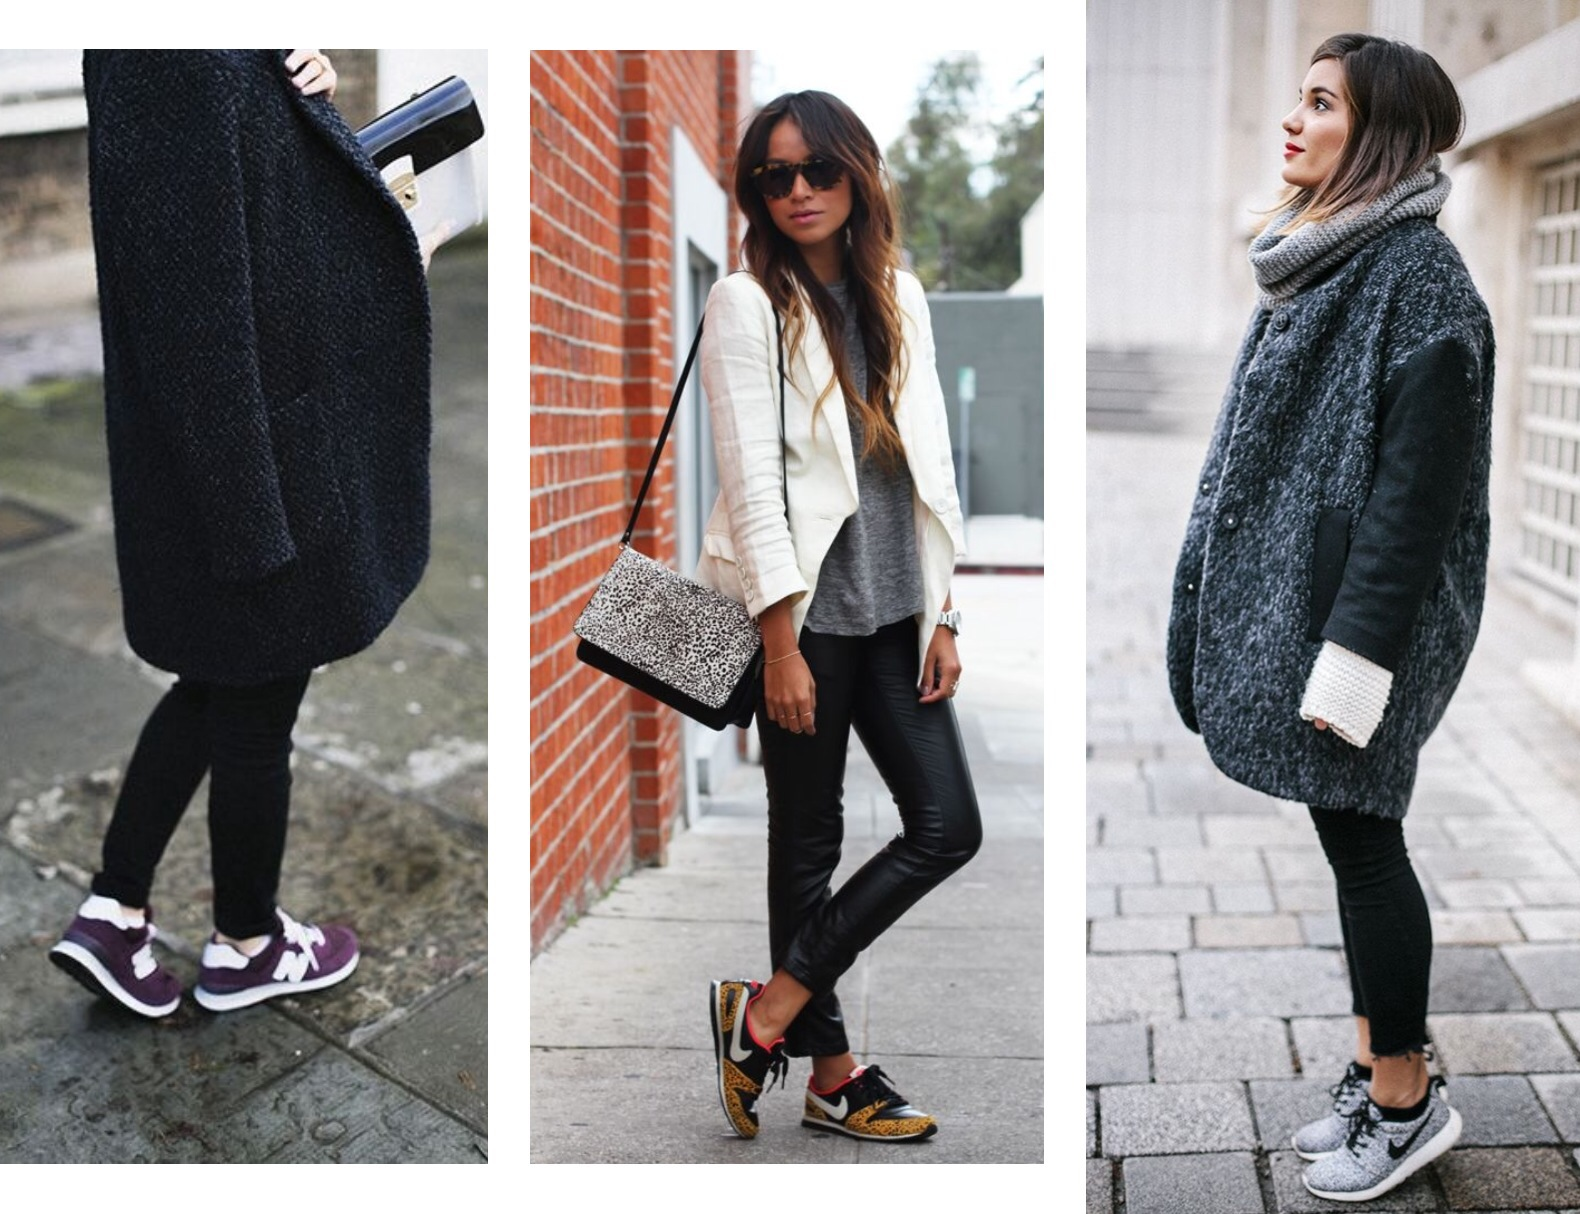 trainers – Visage by Isa